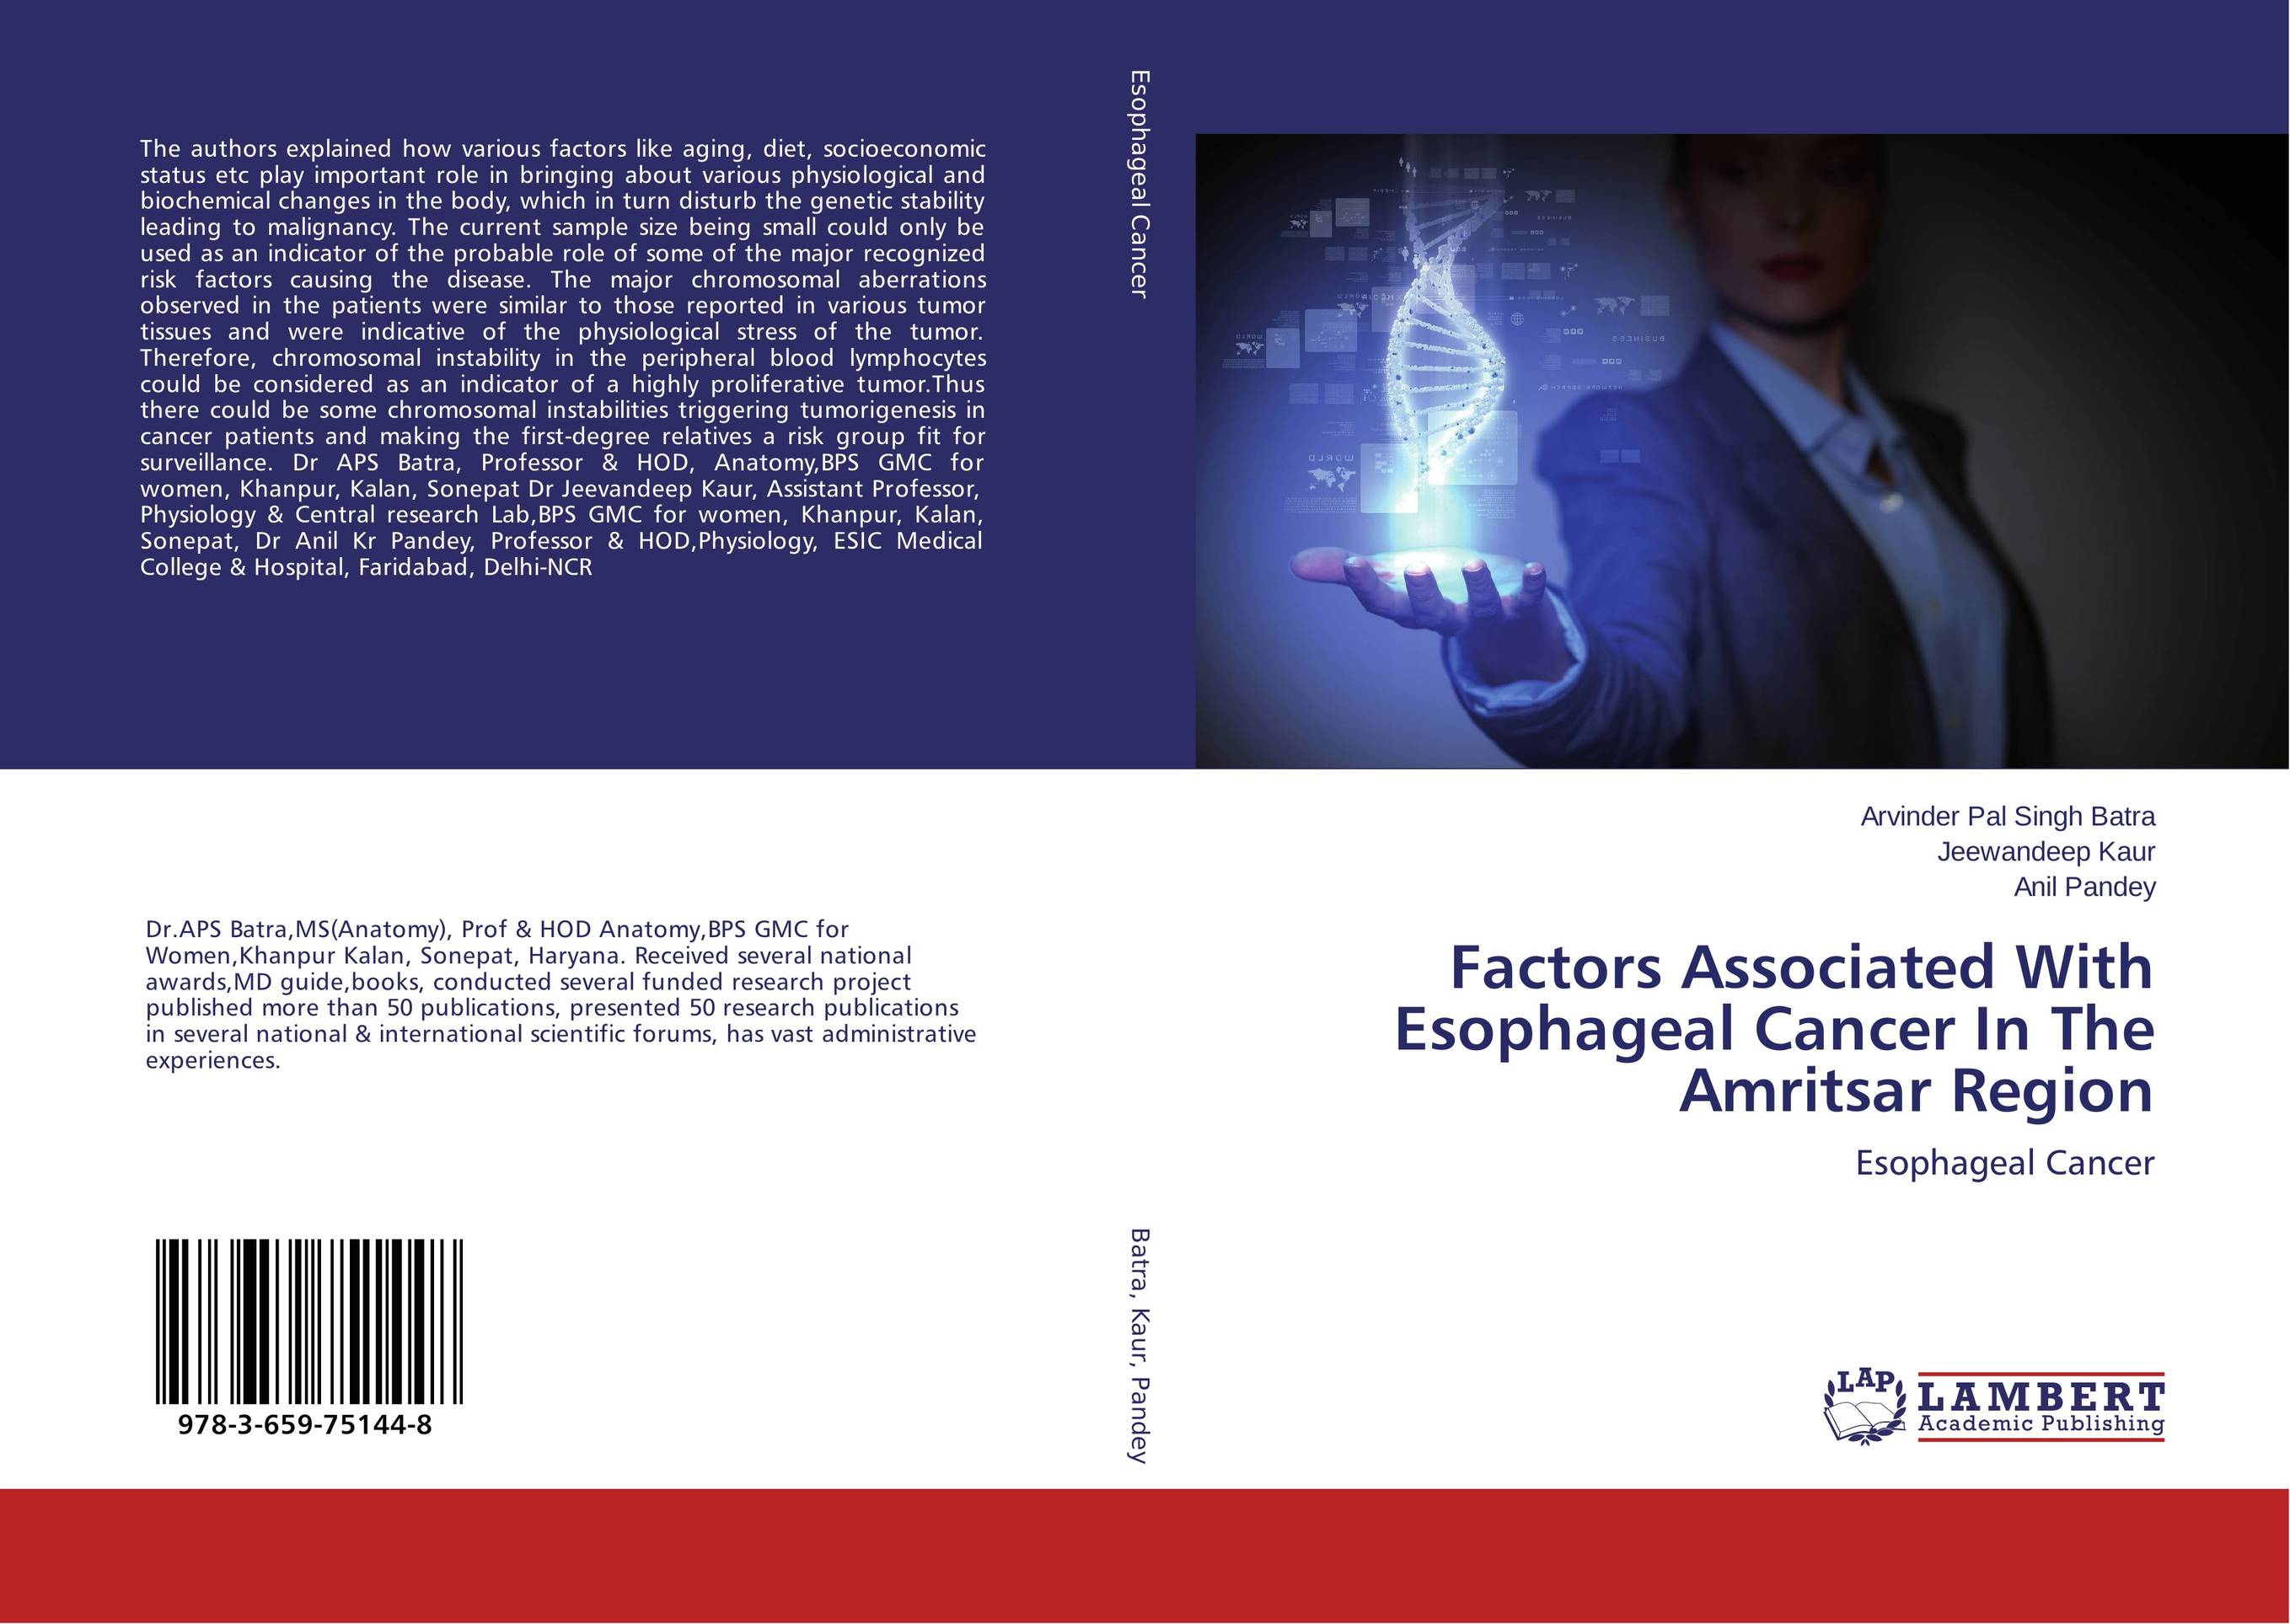 Фото Factors Associated With Esophageal Cancer In The Amritsar Region cervical cancer in amhara region in ethiopia